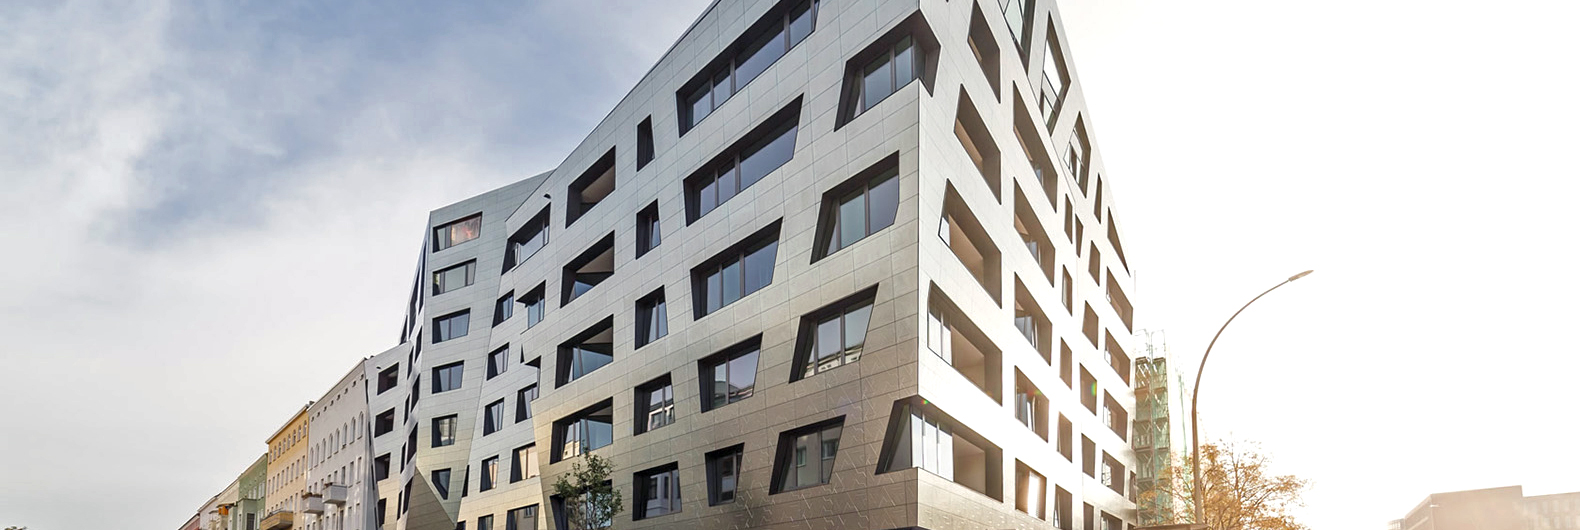 This new Berlin apartment building literally purifies the city's air